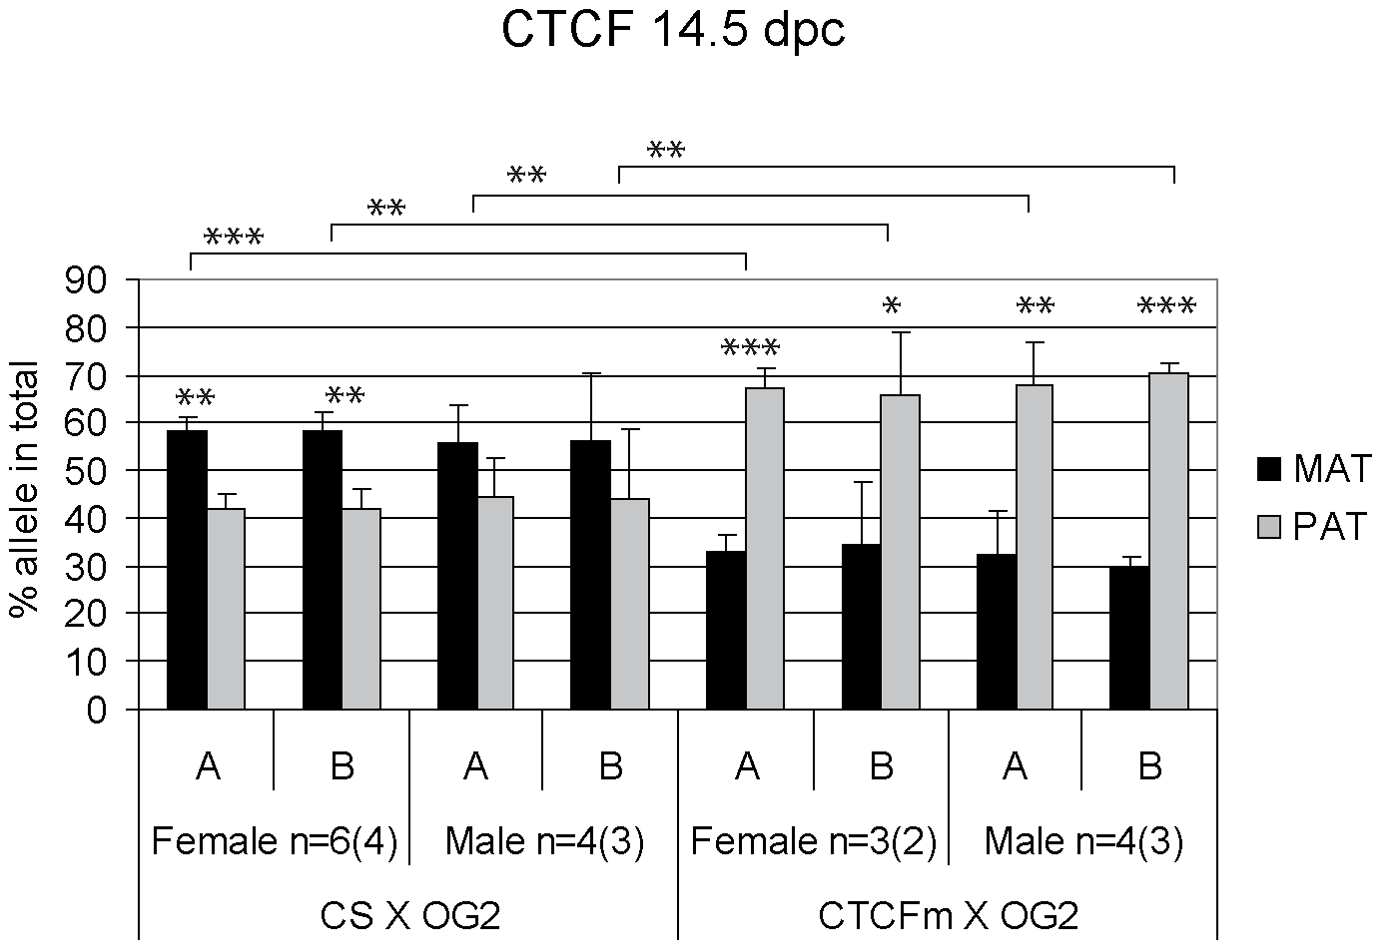 Allele-specific bias in CTCF binding chromatin at the <i>H19/Igf2</i> ICR in 14.5 dpc fetal germ cells.